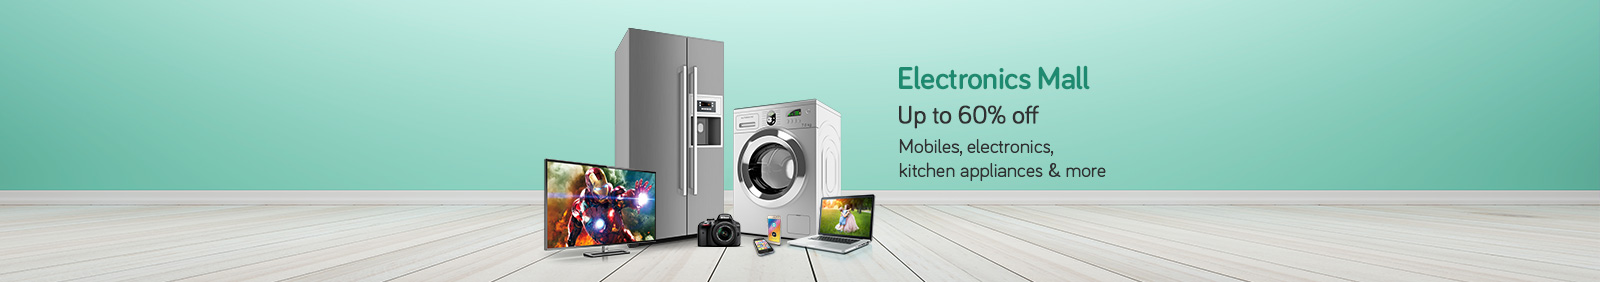 Snapdeal Electronics Mall